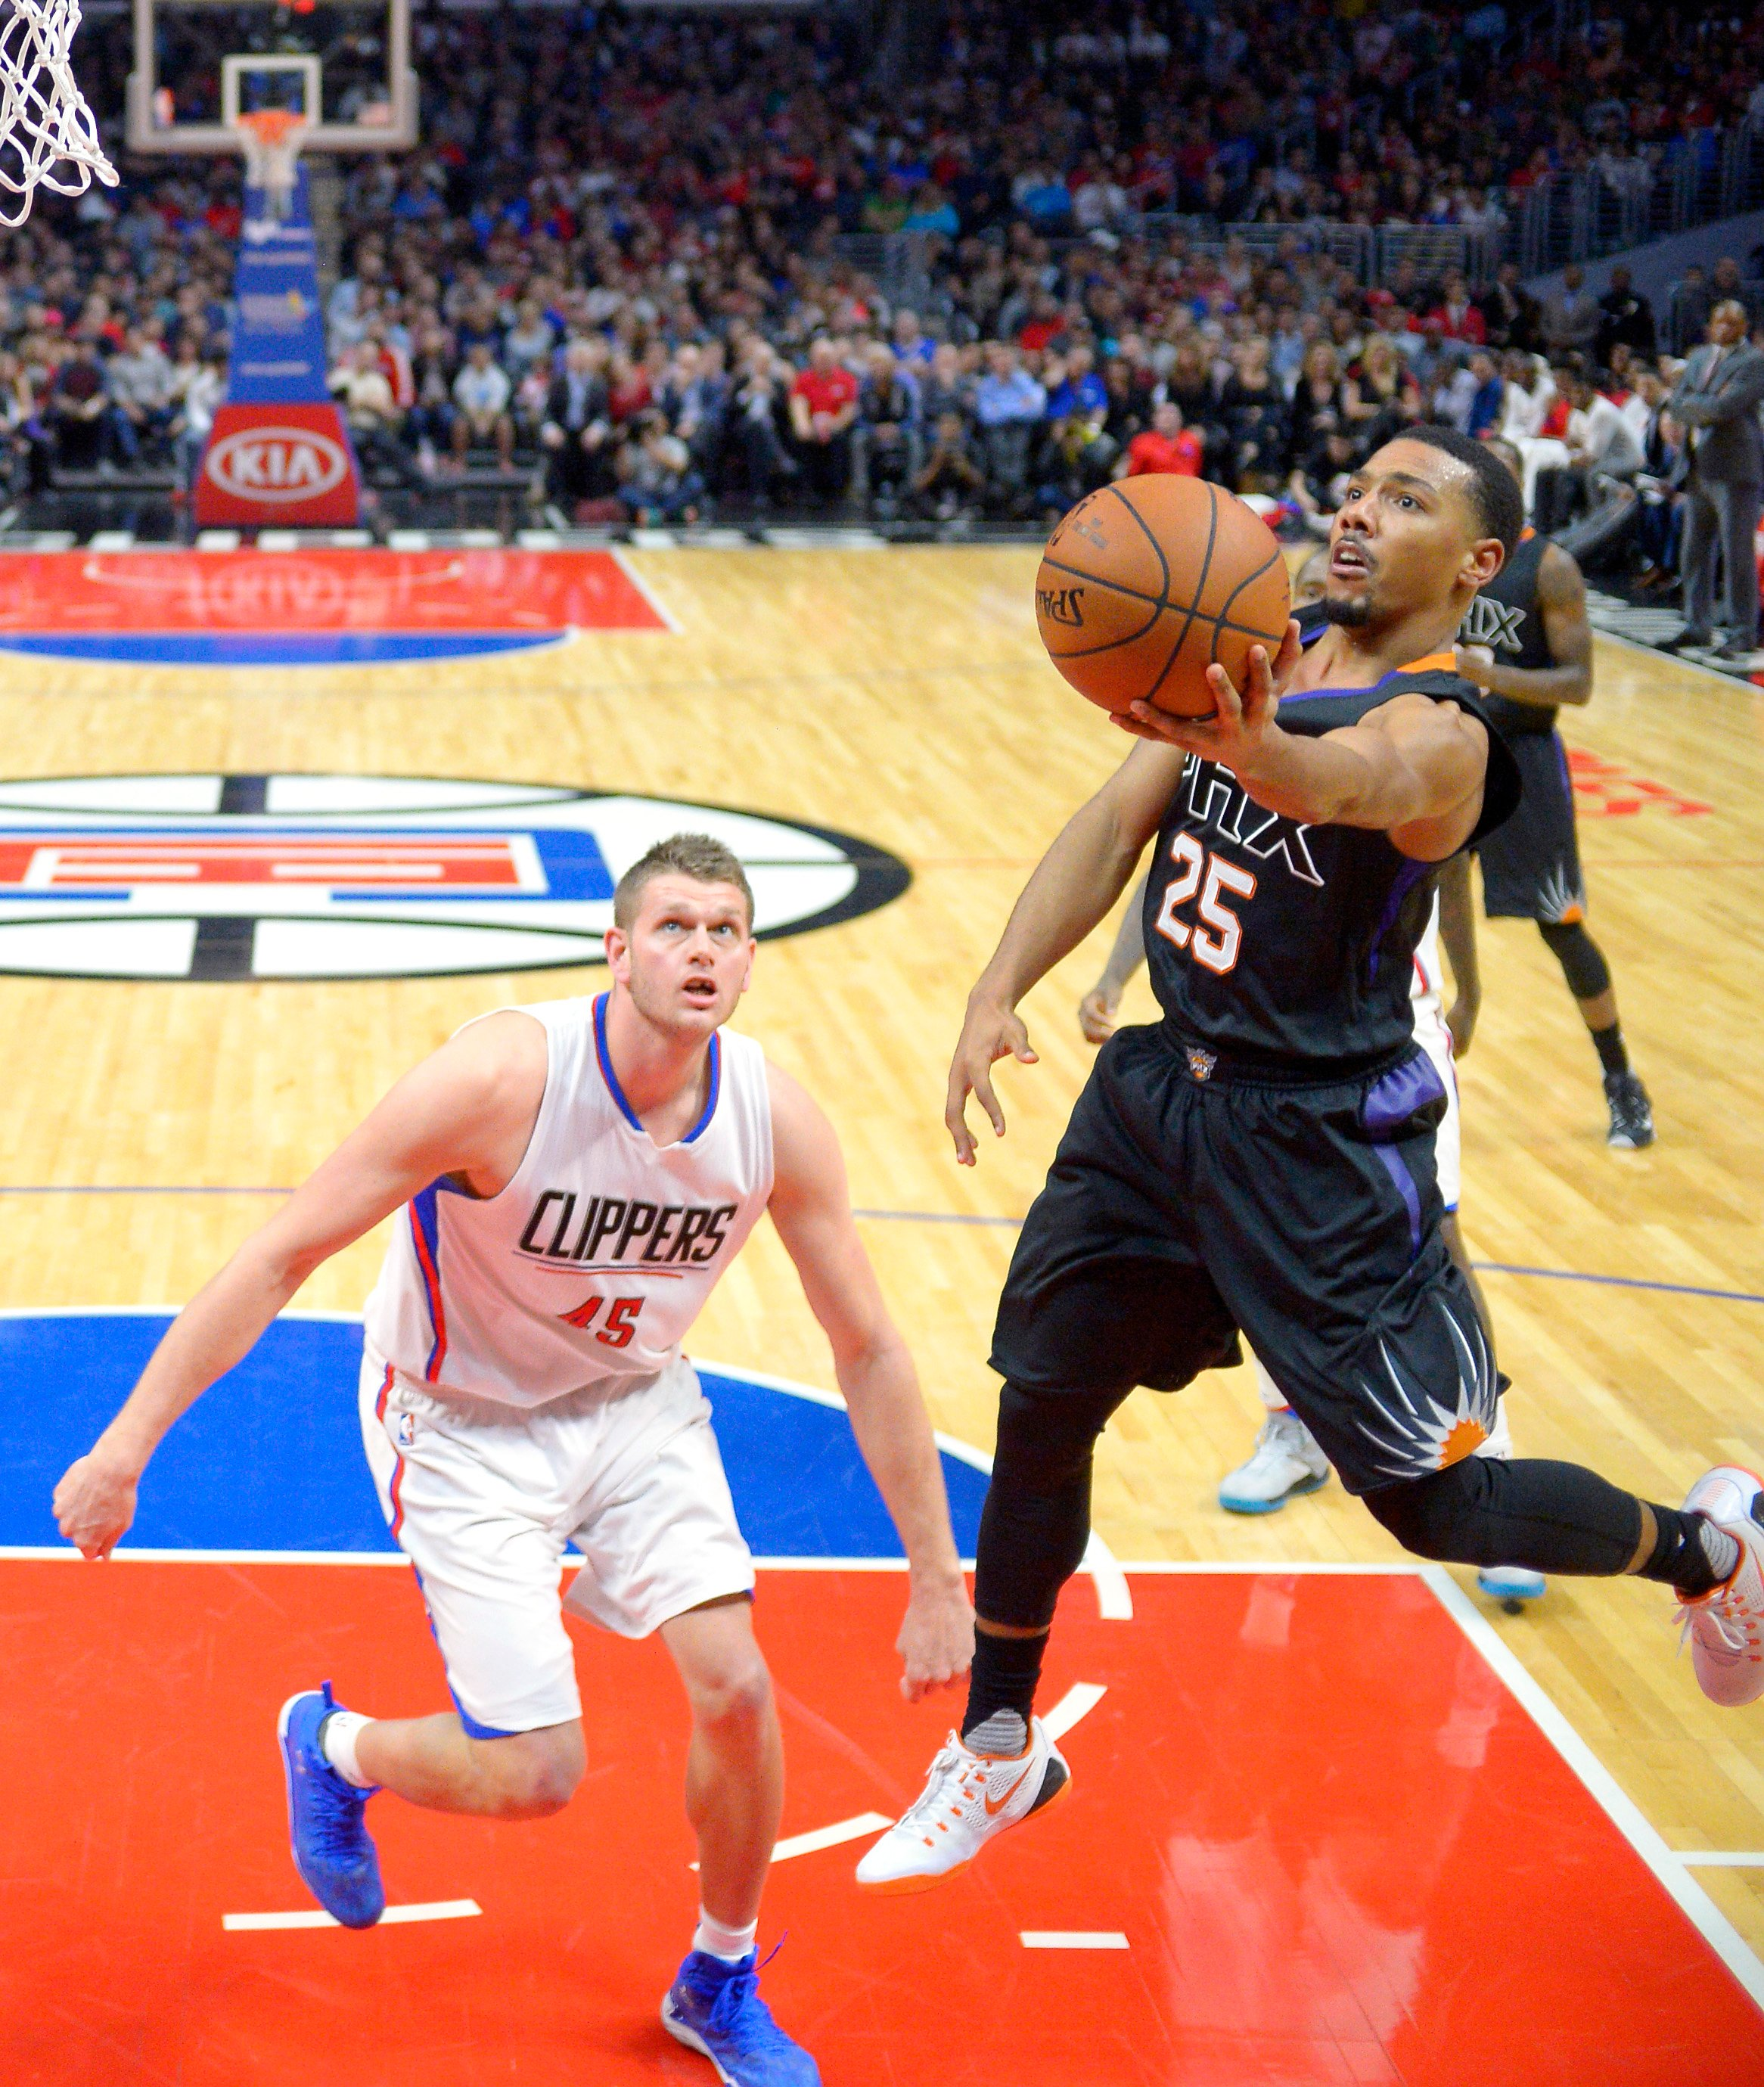 suns_clippers_basketball-b1bc61ee75d6427_r3850.jpeg